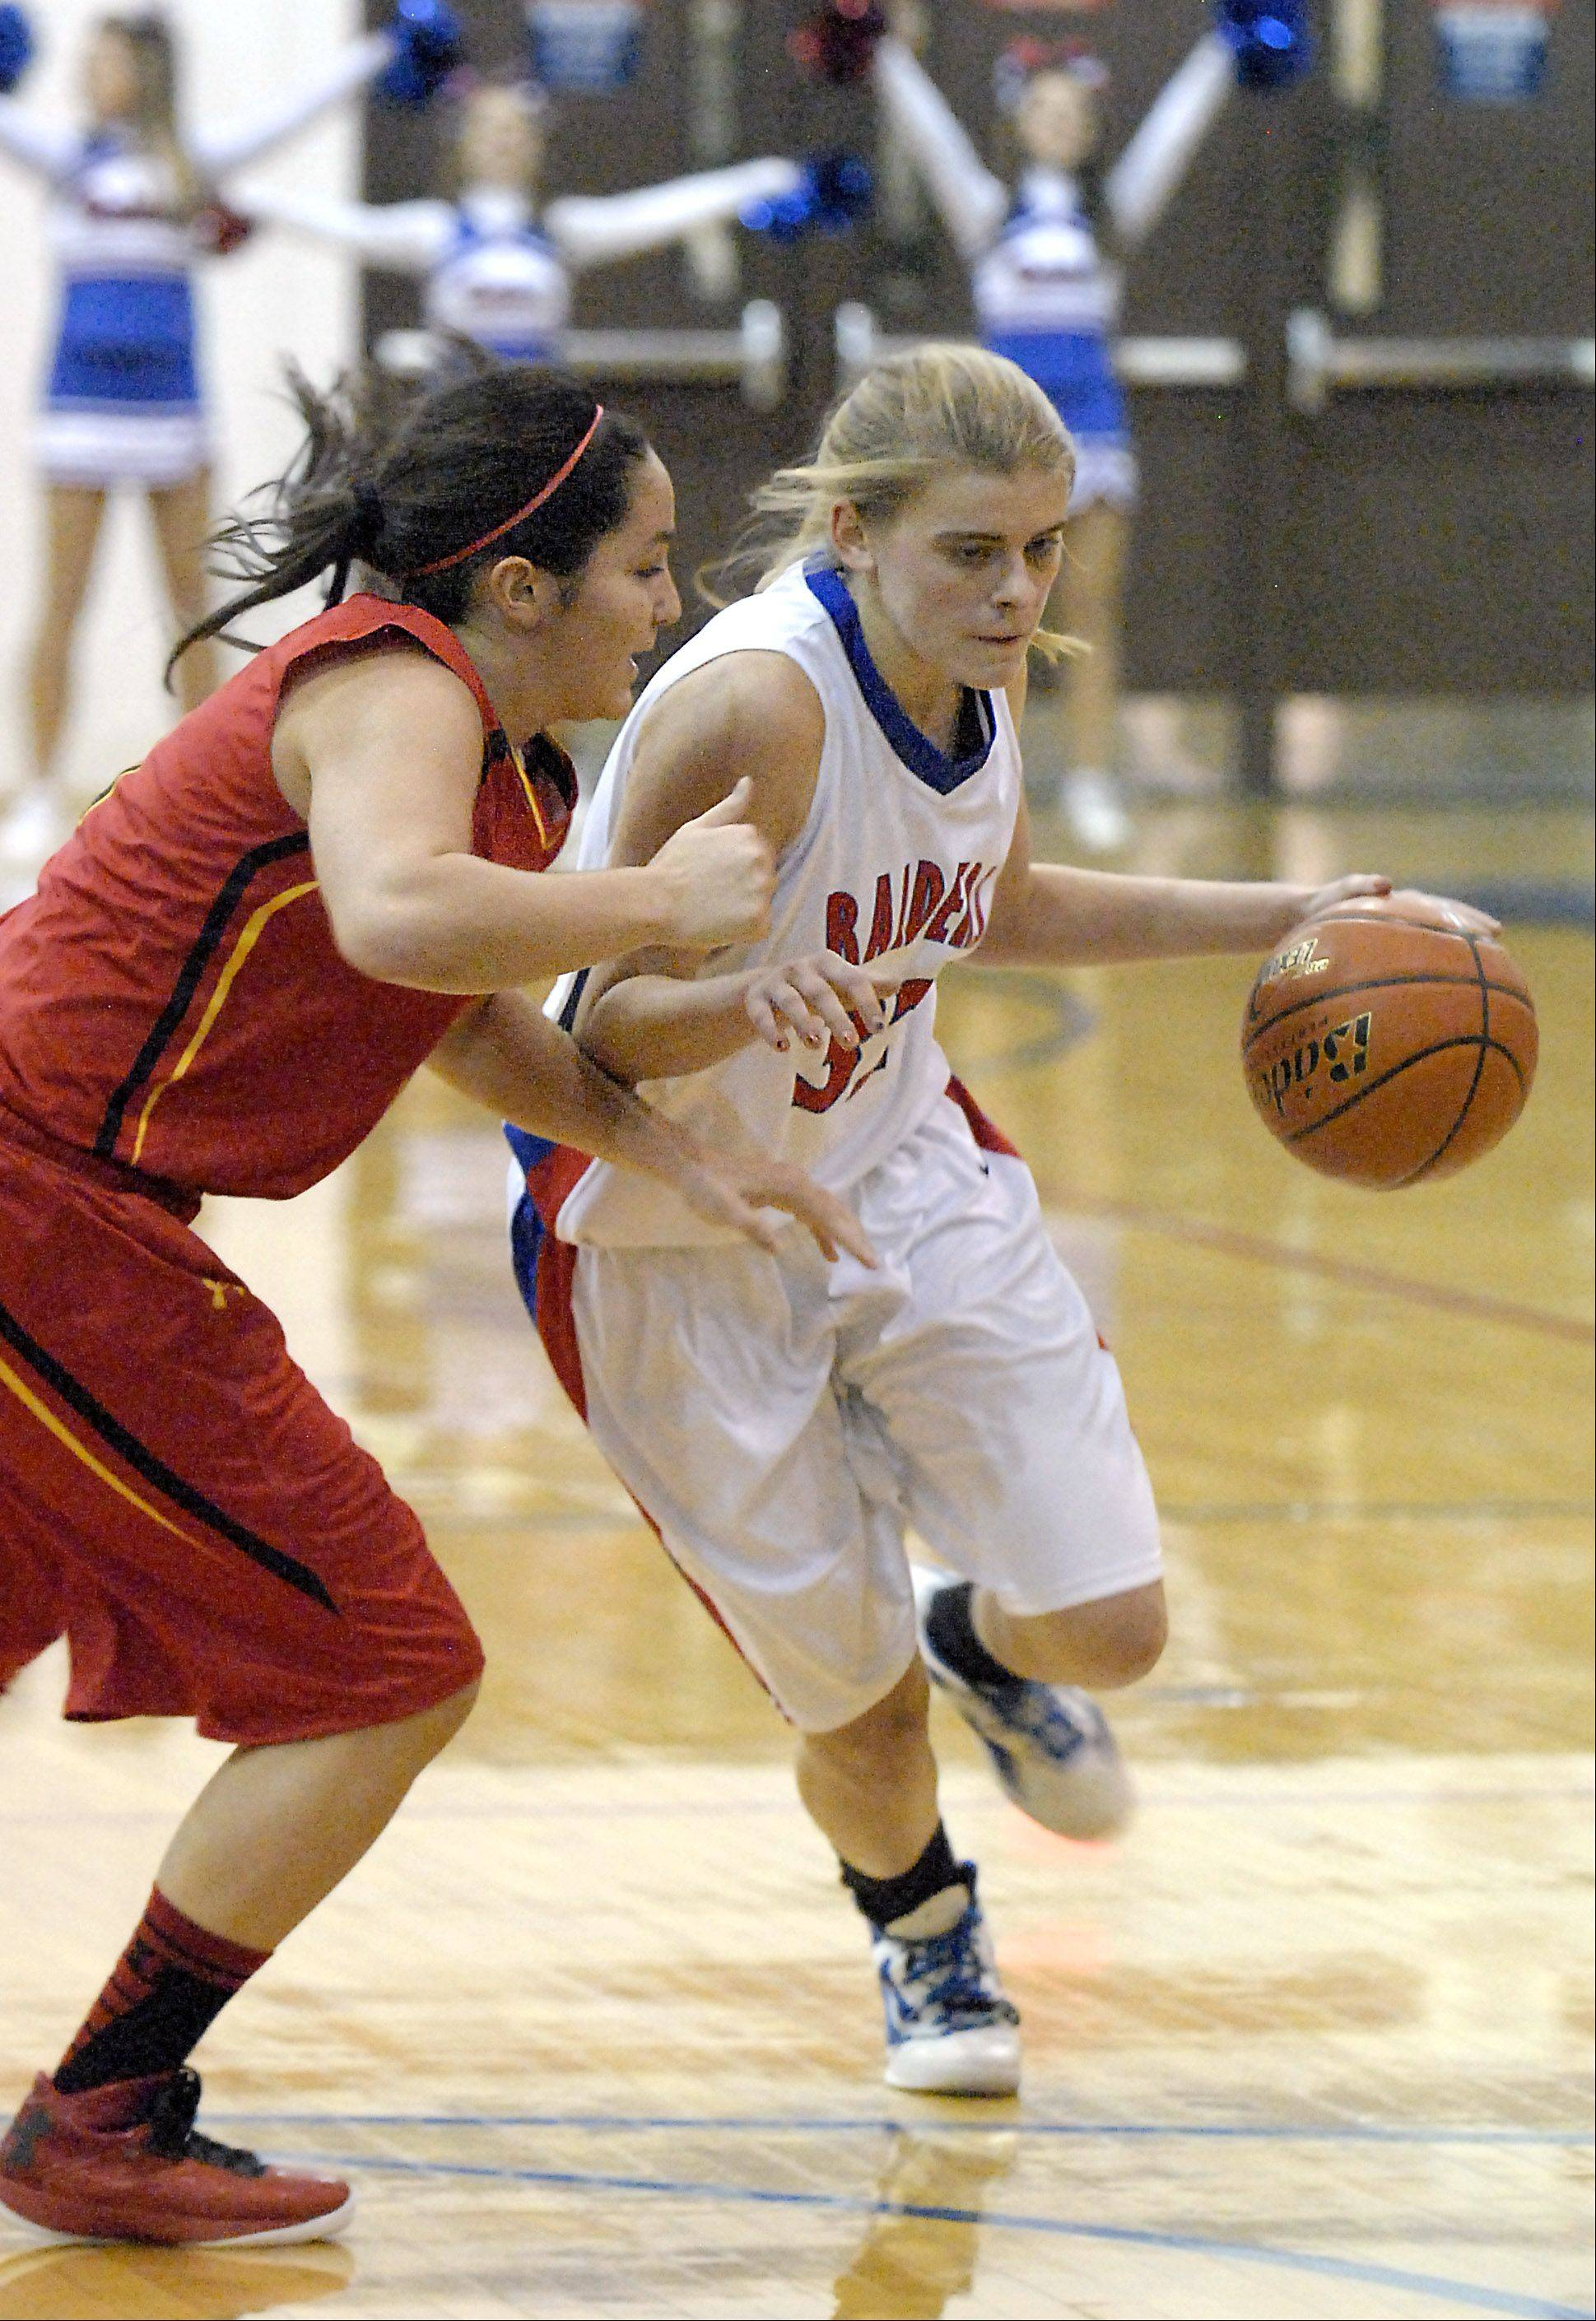 Glenbard South's Tomei Ball dribbles around Batavia's Sami Villarreal in the third quarter on Tuesday, November 13.